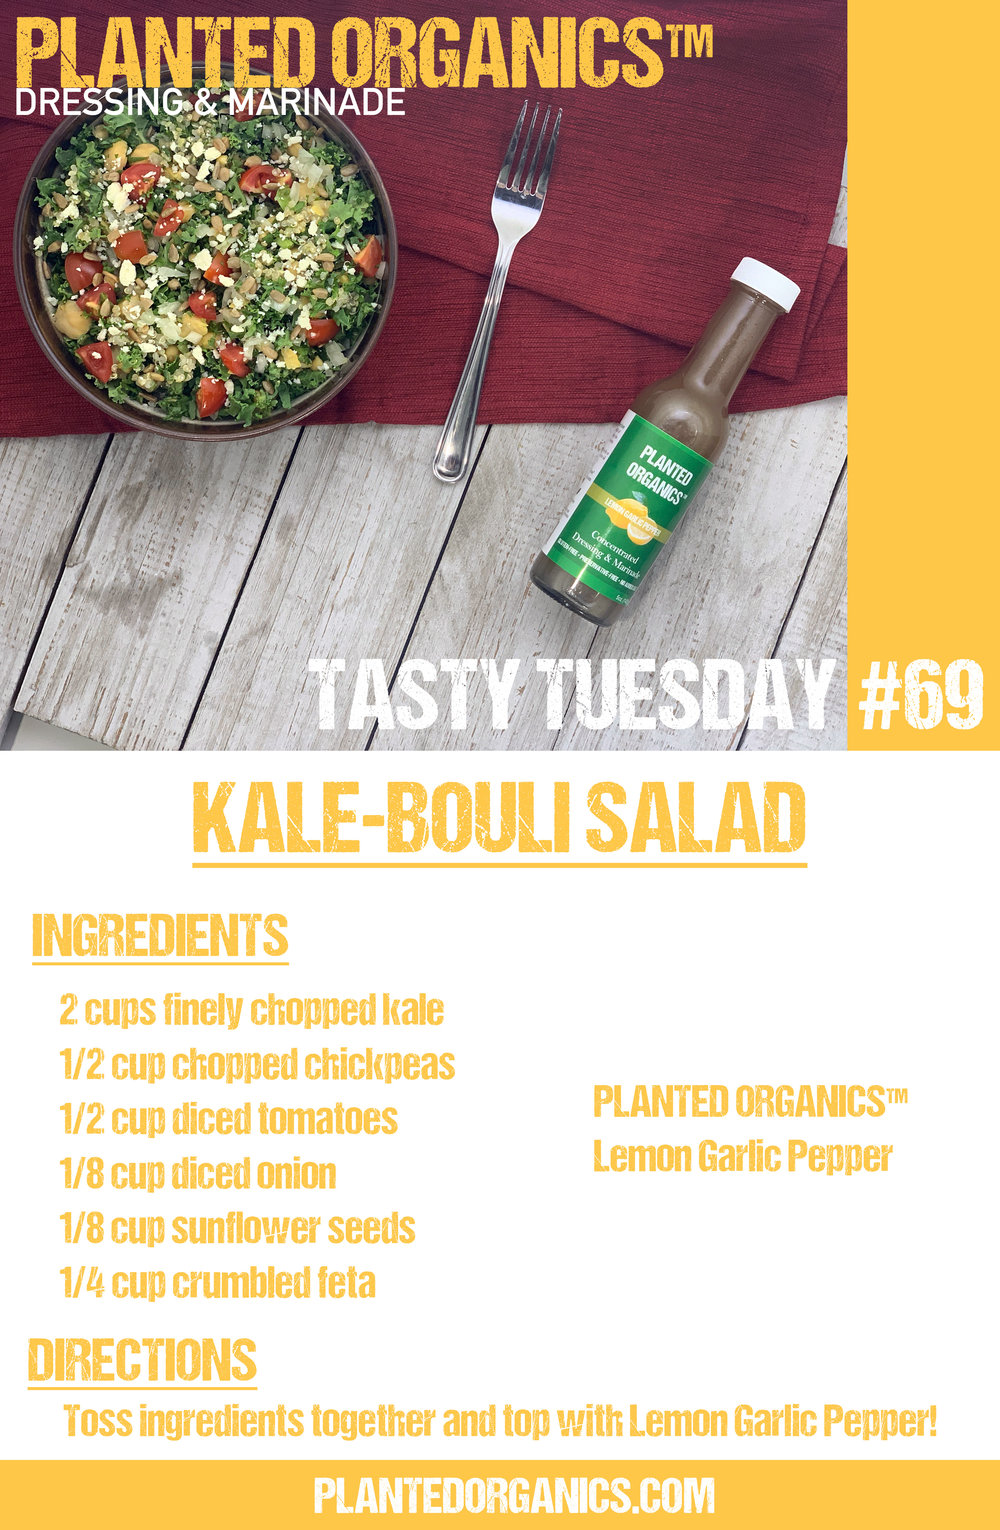 Tasty Tuesday #69! - This week is a Kale-bouli salad! Inspired by the original mediterranean dish, this remixed salad is also gluten free! Starring our Lemon Garlic Pepper dressing, this salad packs a punch!